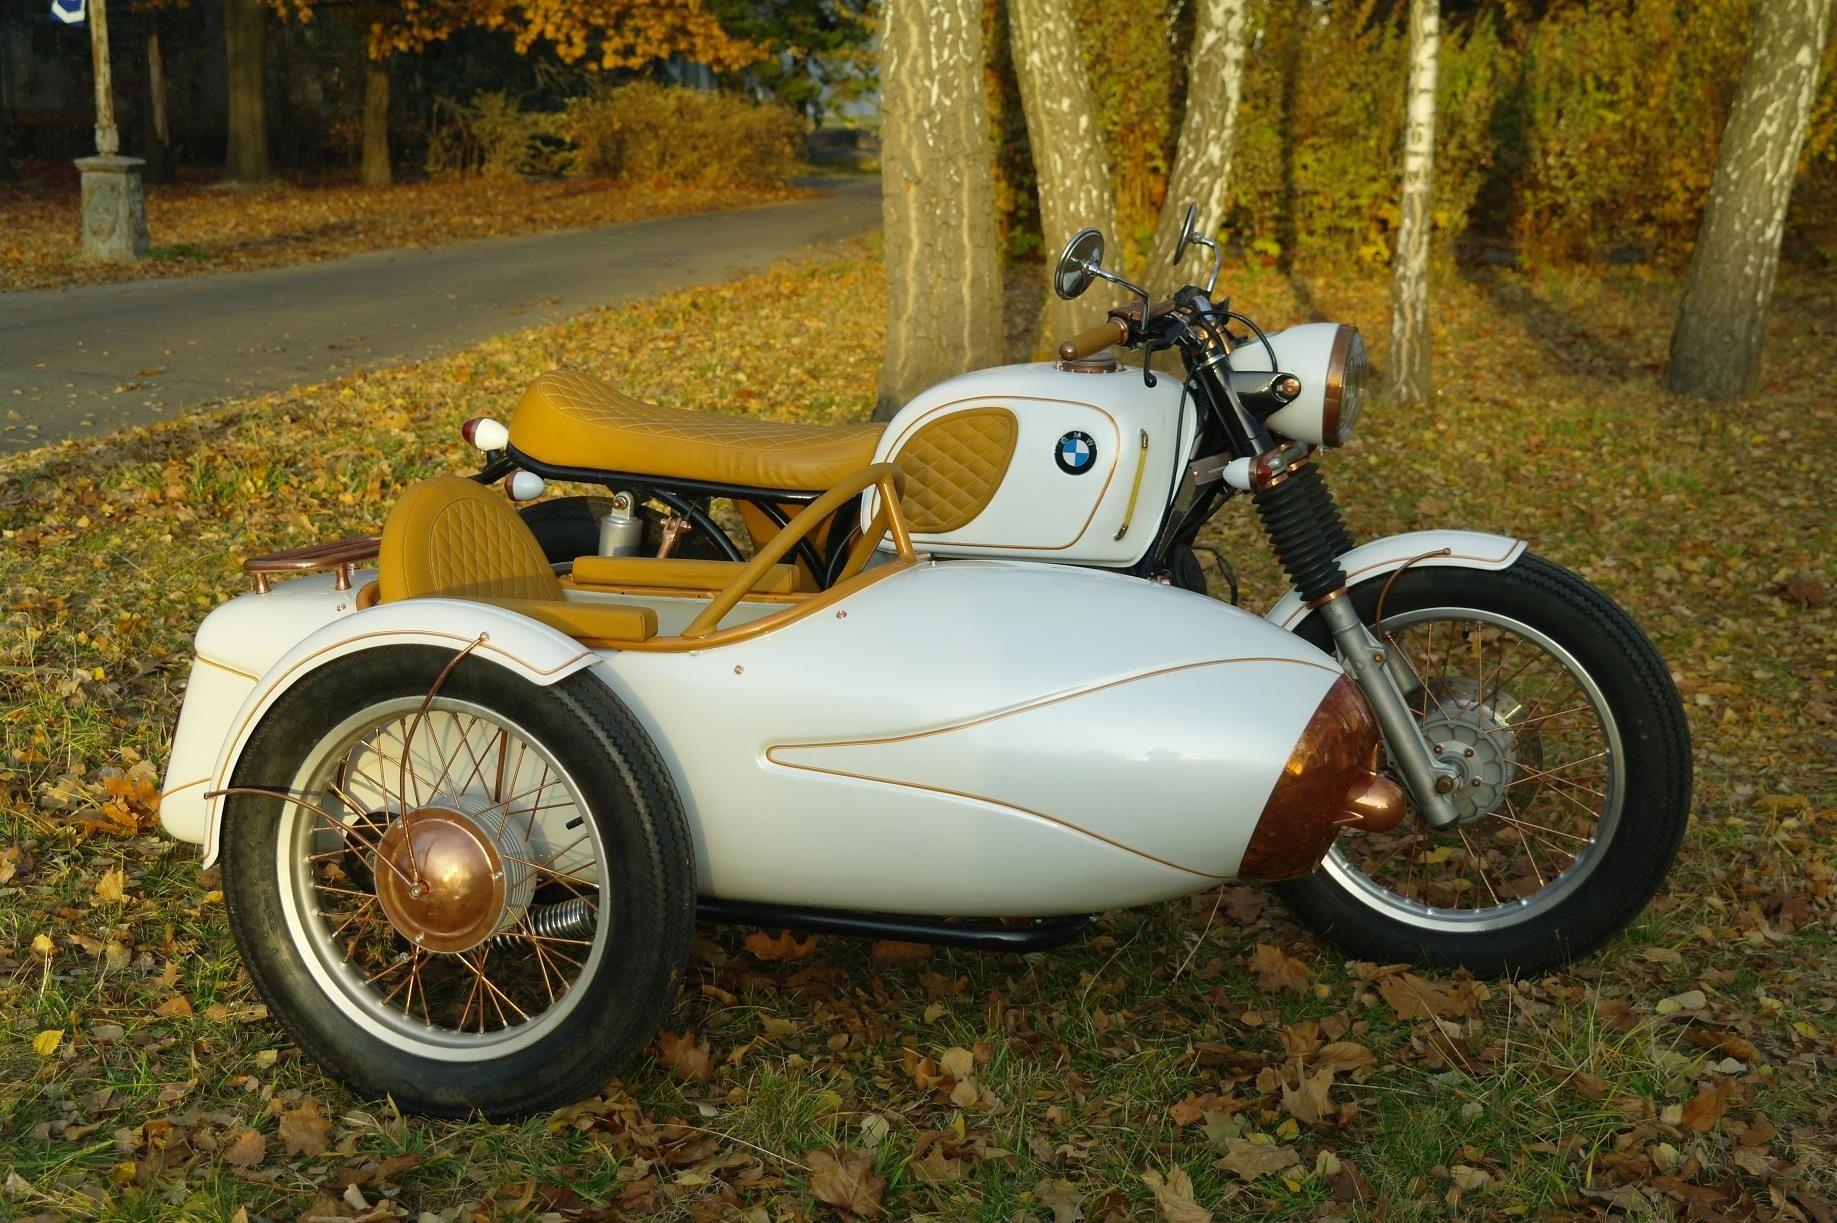 Motorcycle White Motorcycle Cars: BMW R90/6(?) Airhead Custom With Sidecar In White With Tan